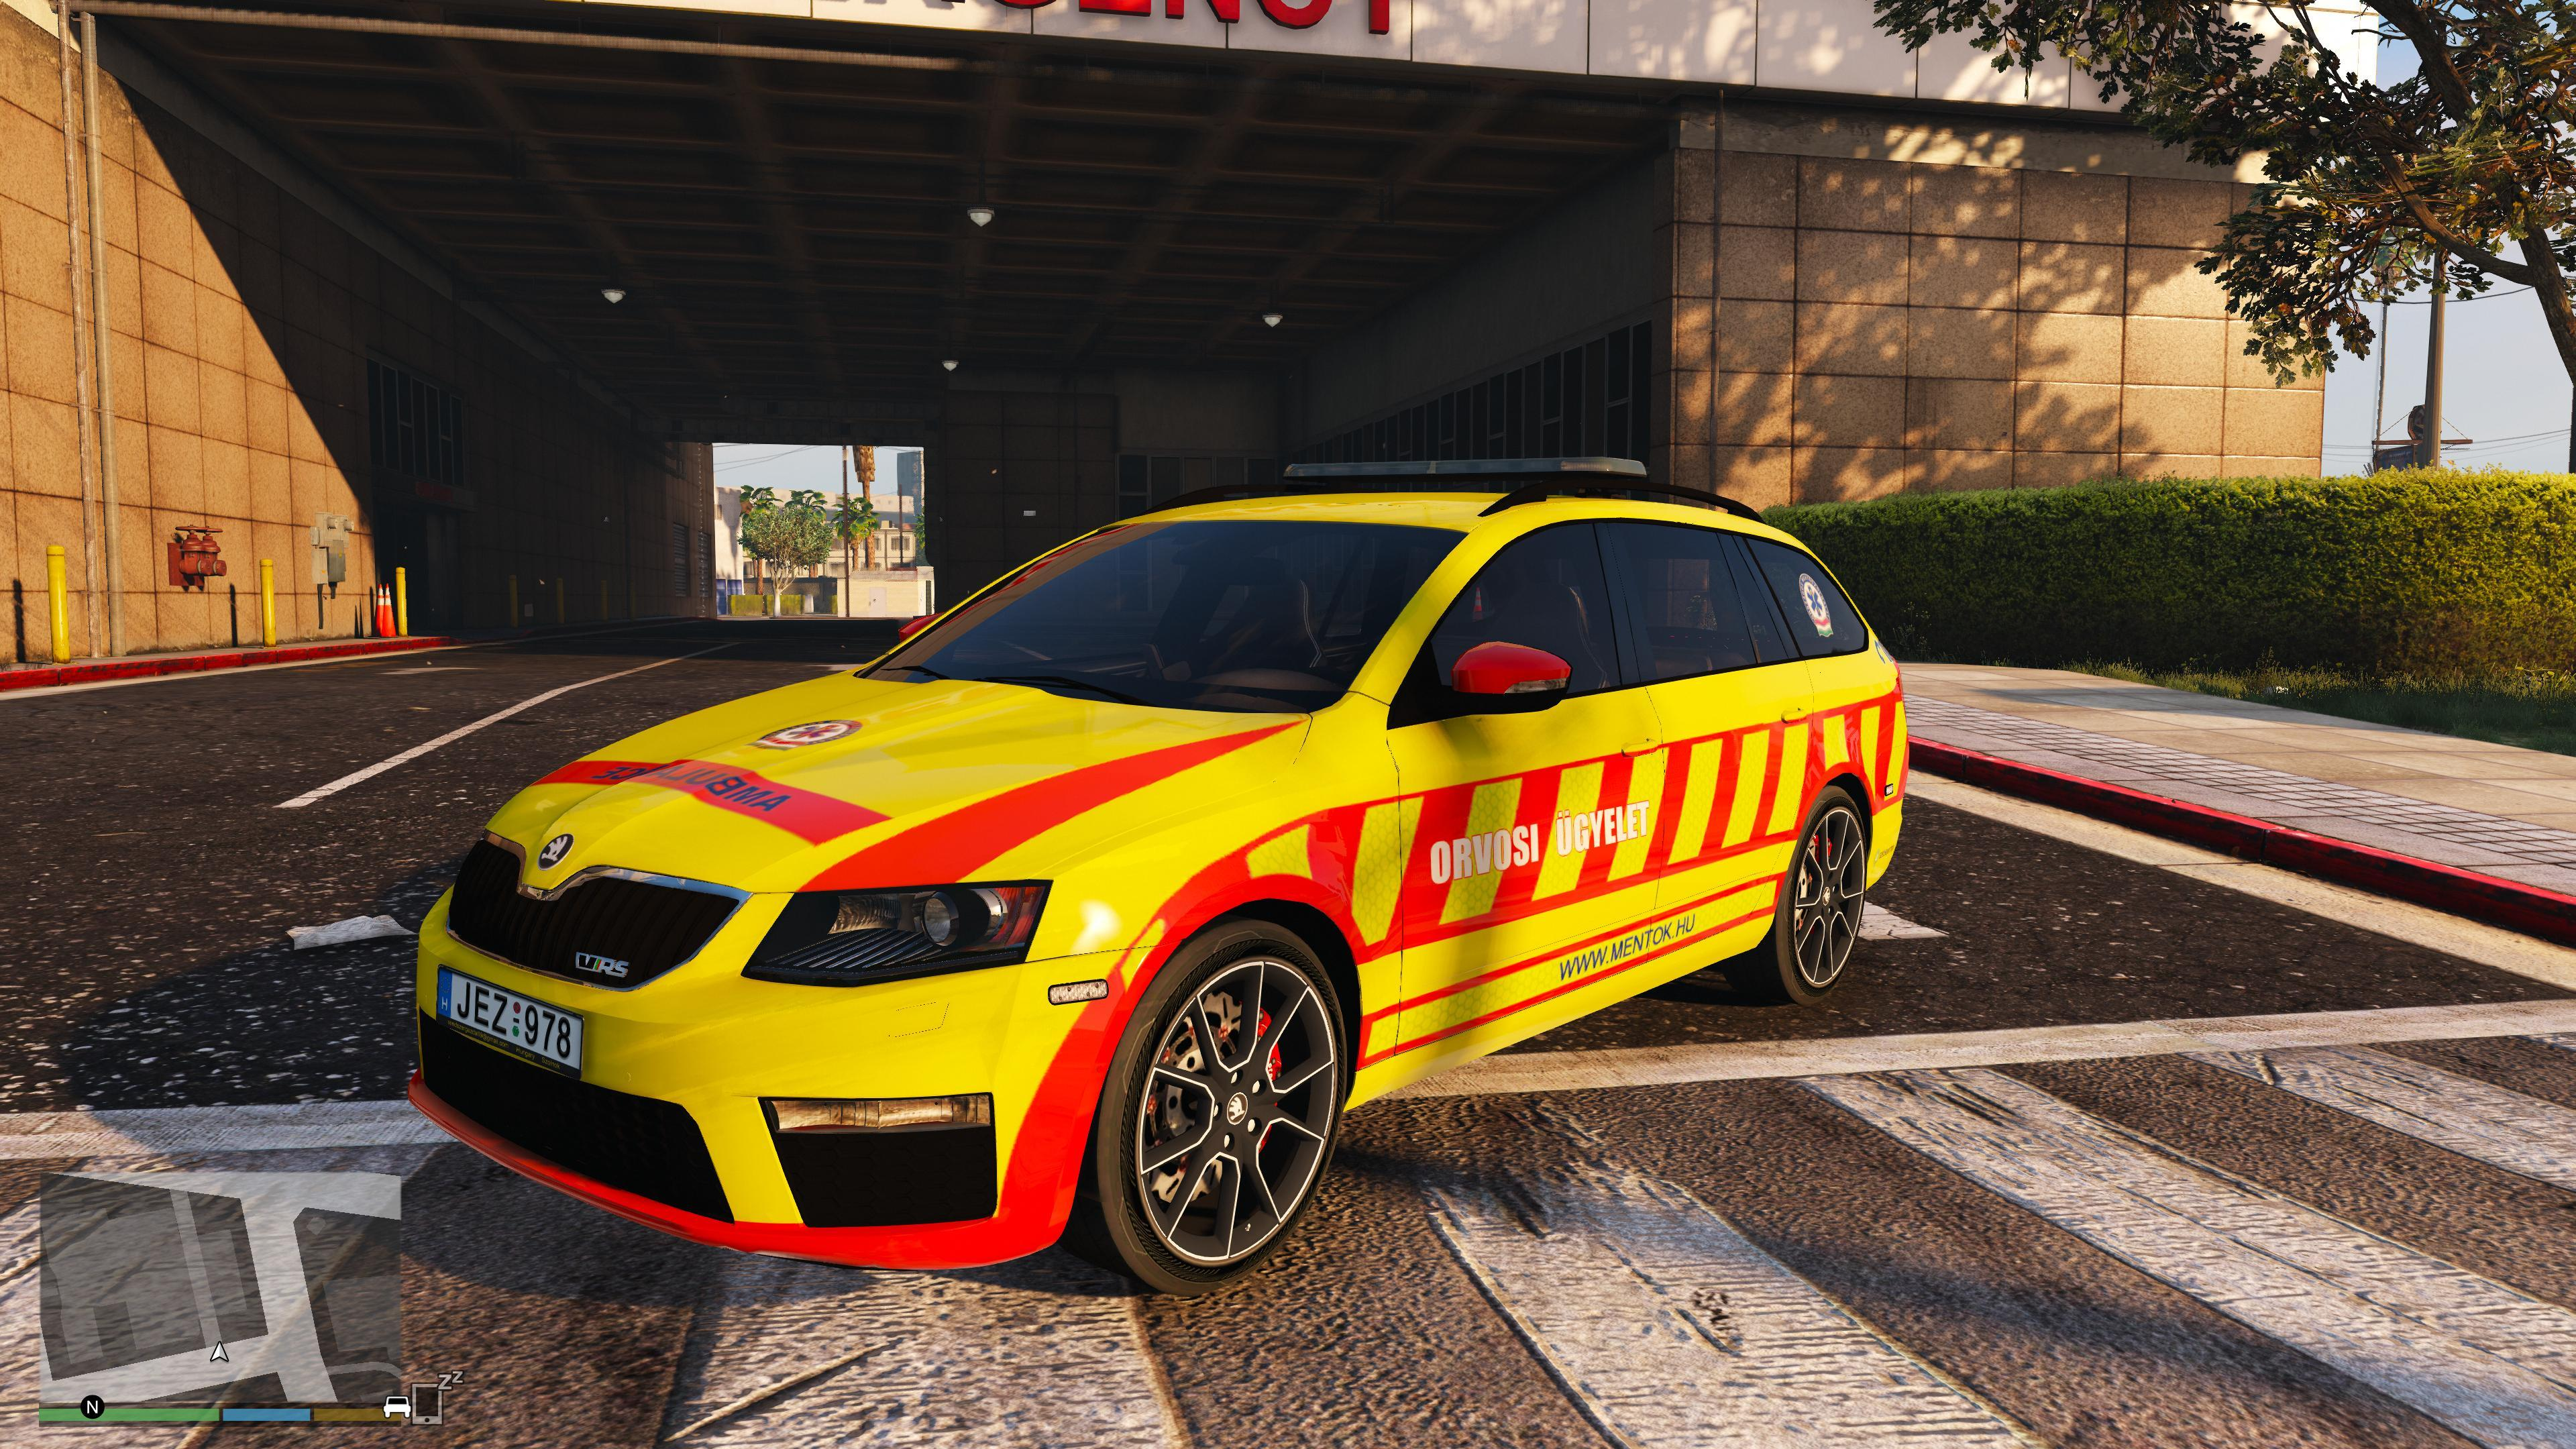 koda octavia vrs hungarian ambulance gta5. Black Bedroom Furniture Sets. Home Design Ideas